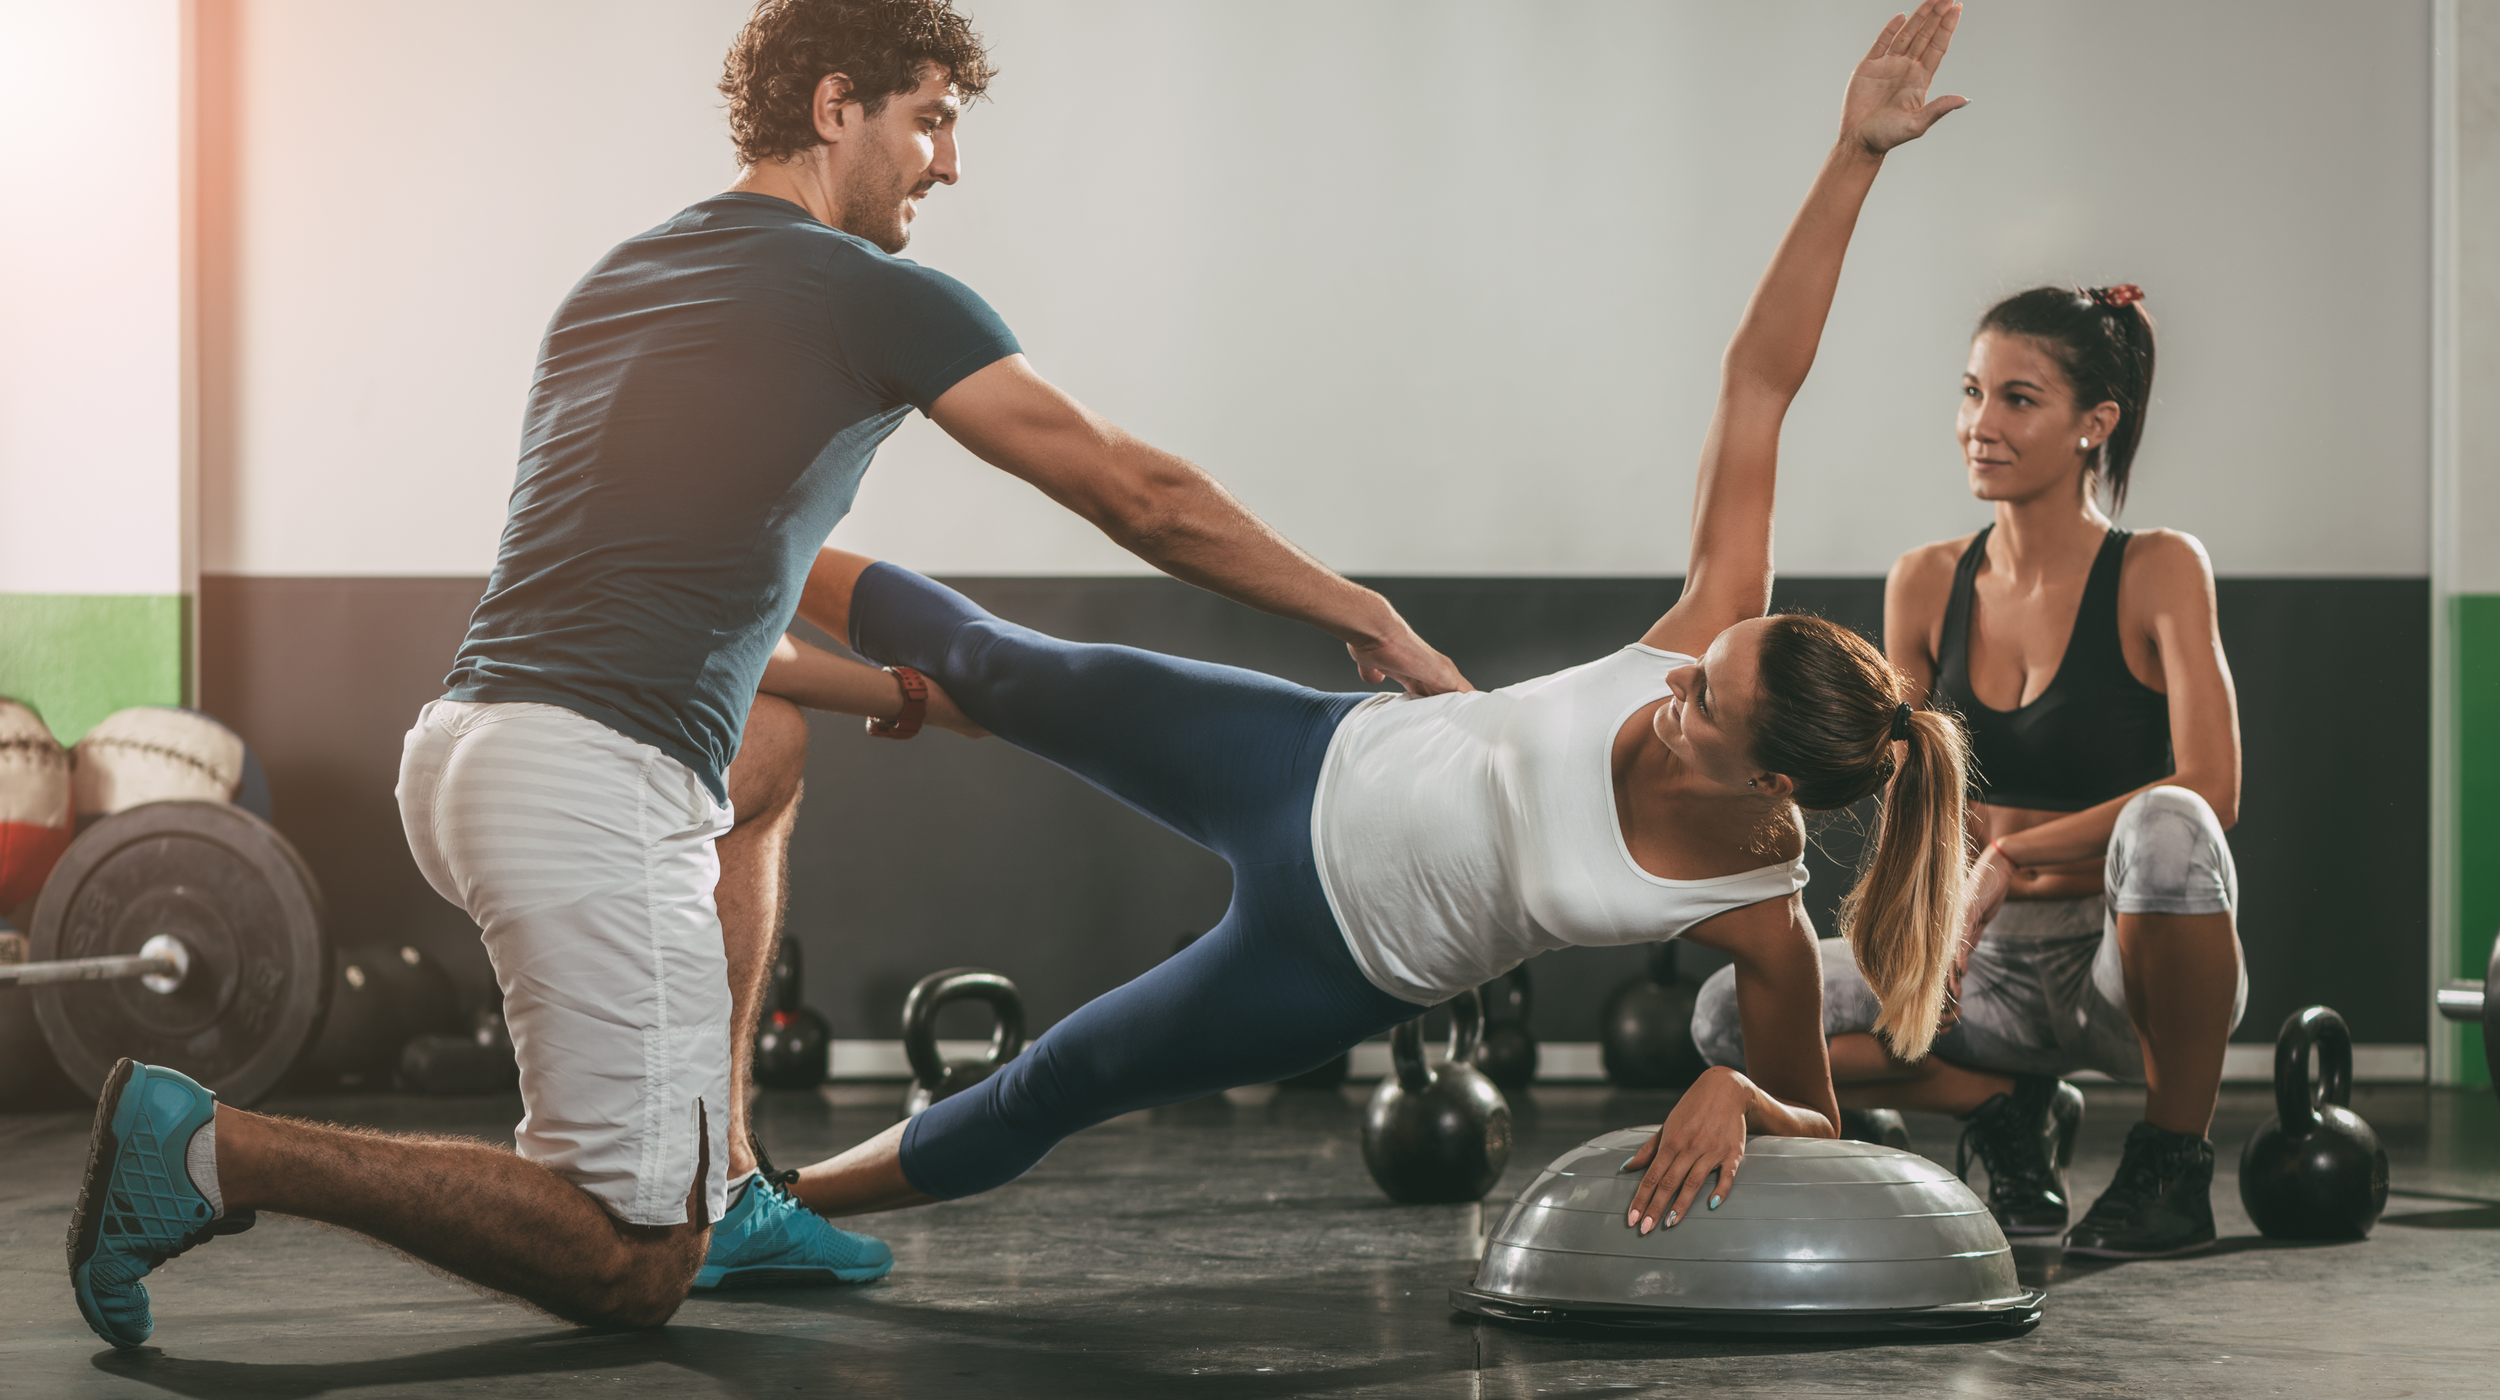 Can Personal Trainers Have Specialties?